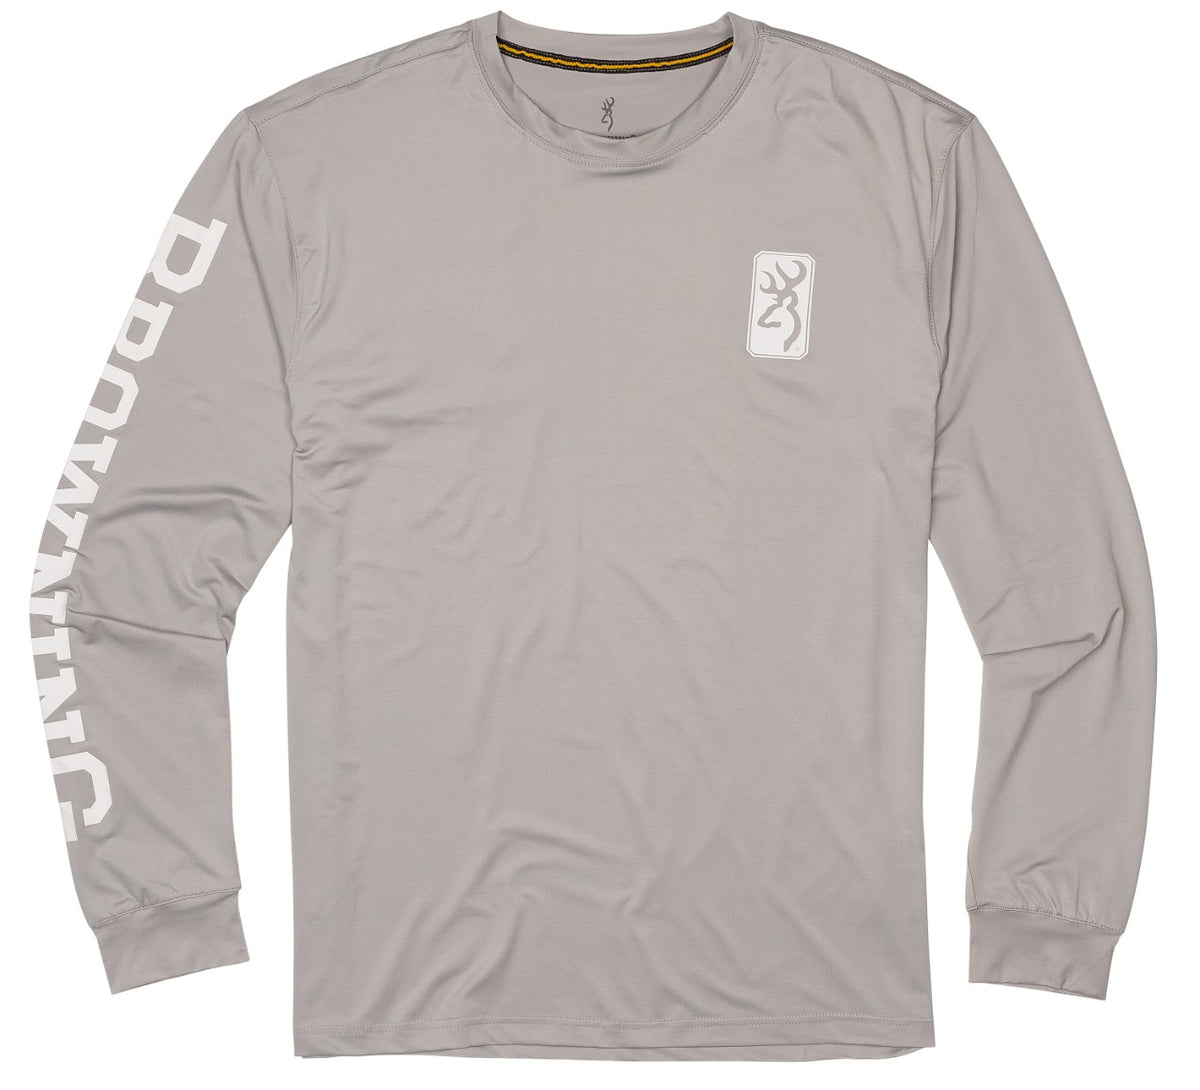 SHT,SUN,LS,LT GREY,BROWNING,2XL